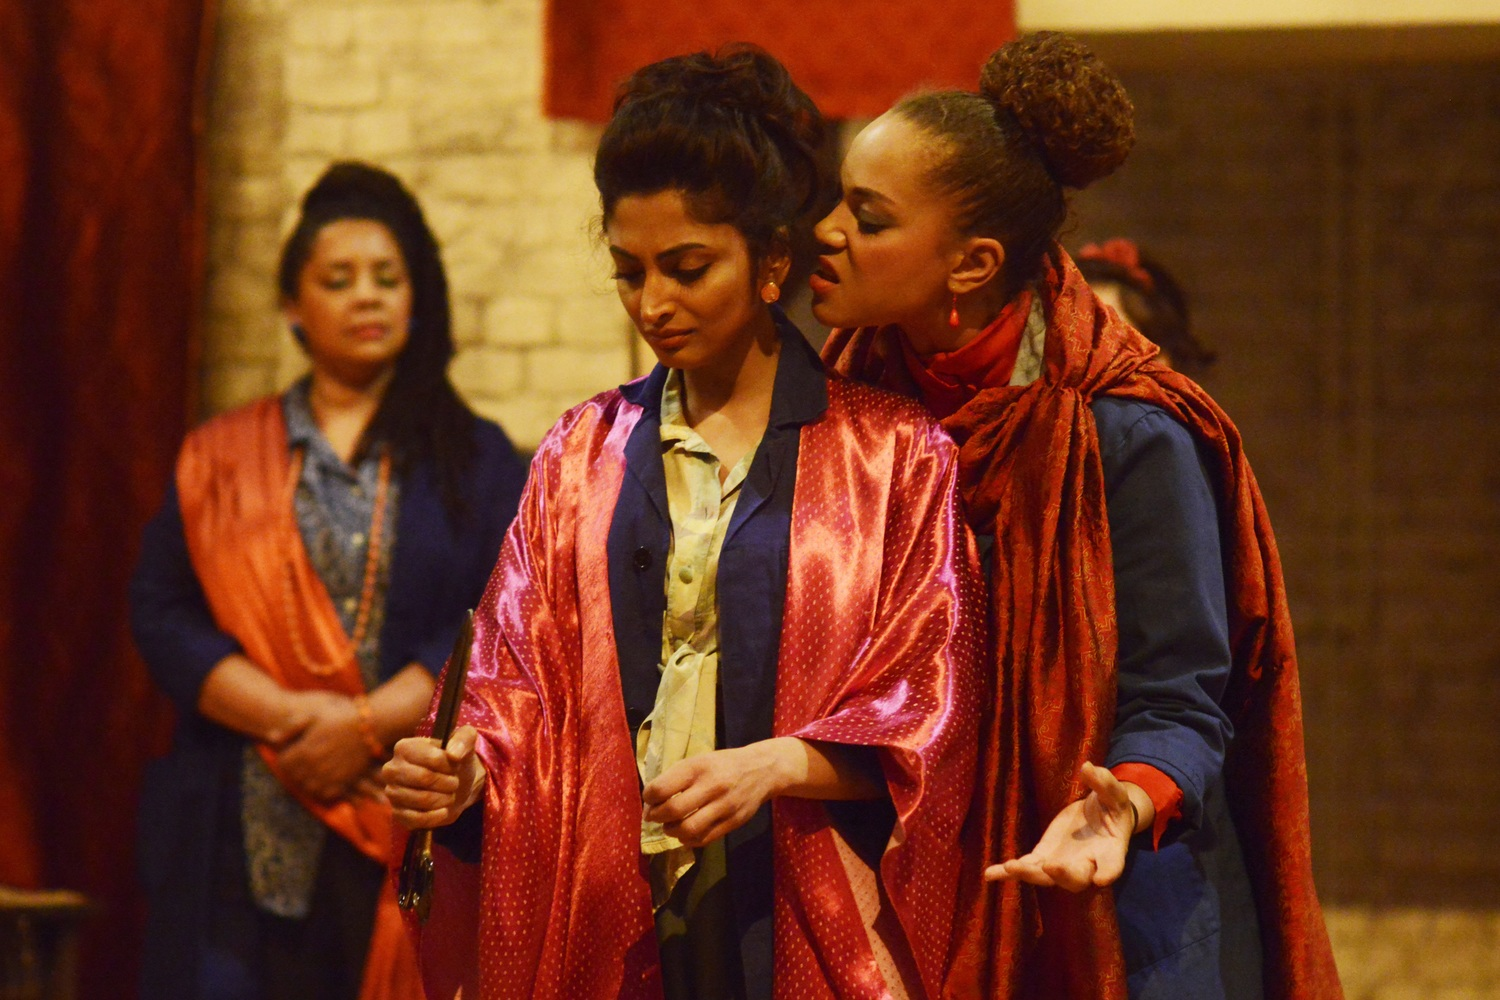 BWW Review: THE CAPTIVE QUEEN, Sam Wanamaker Playhouse